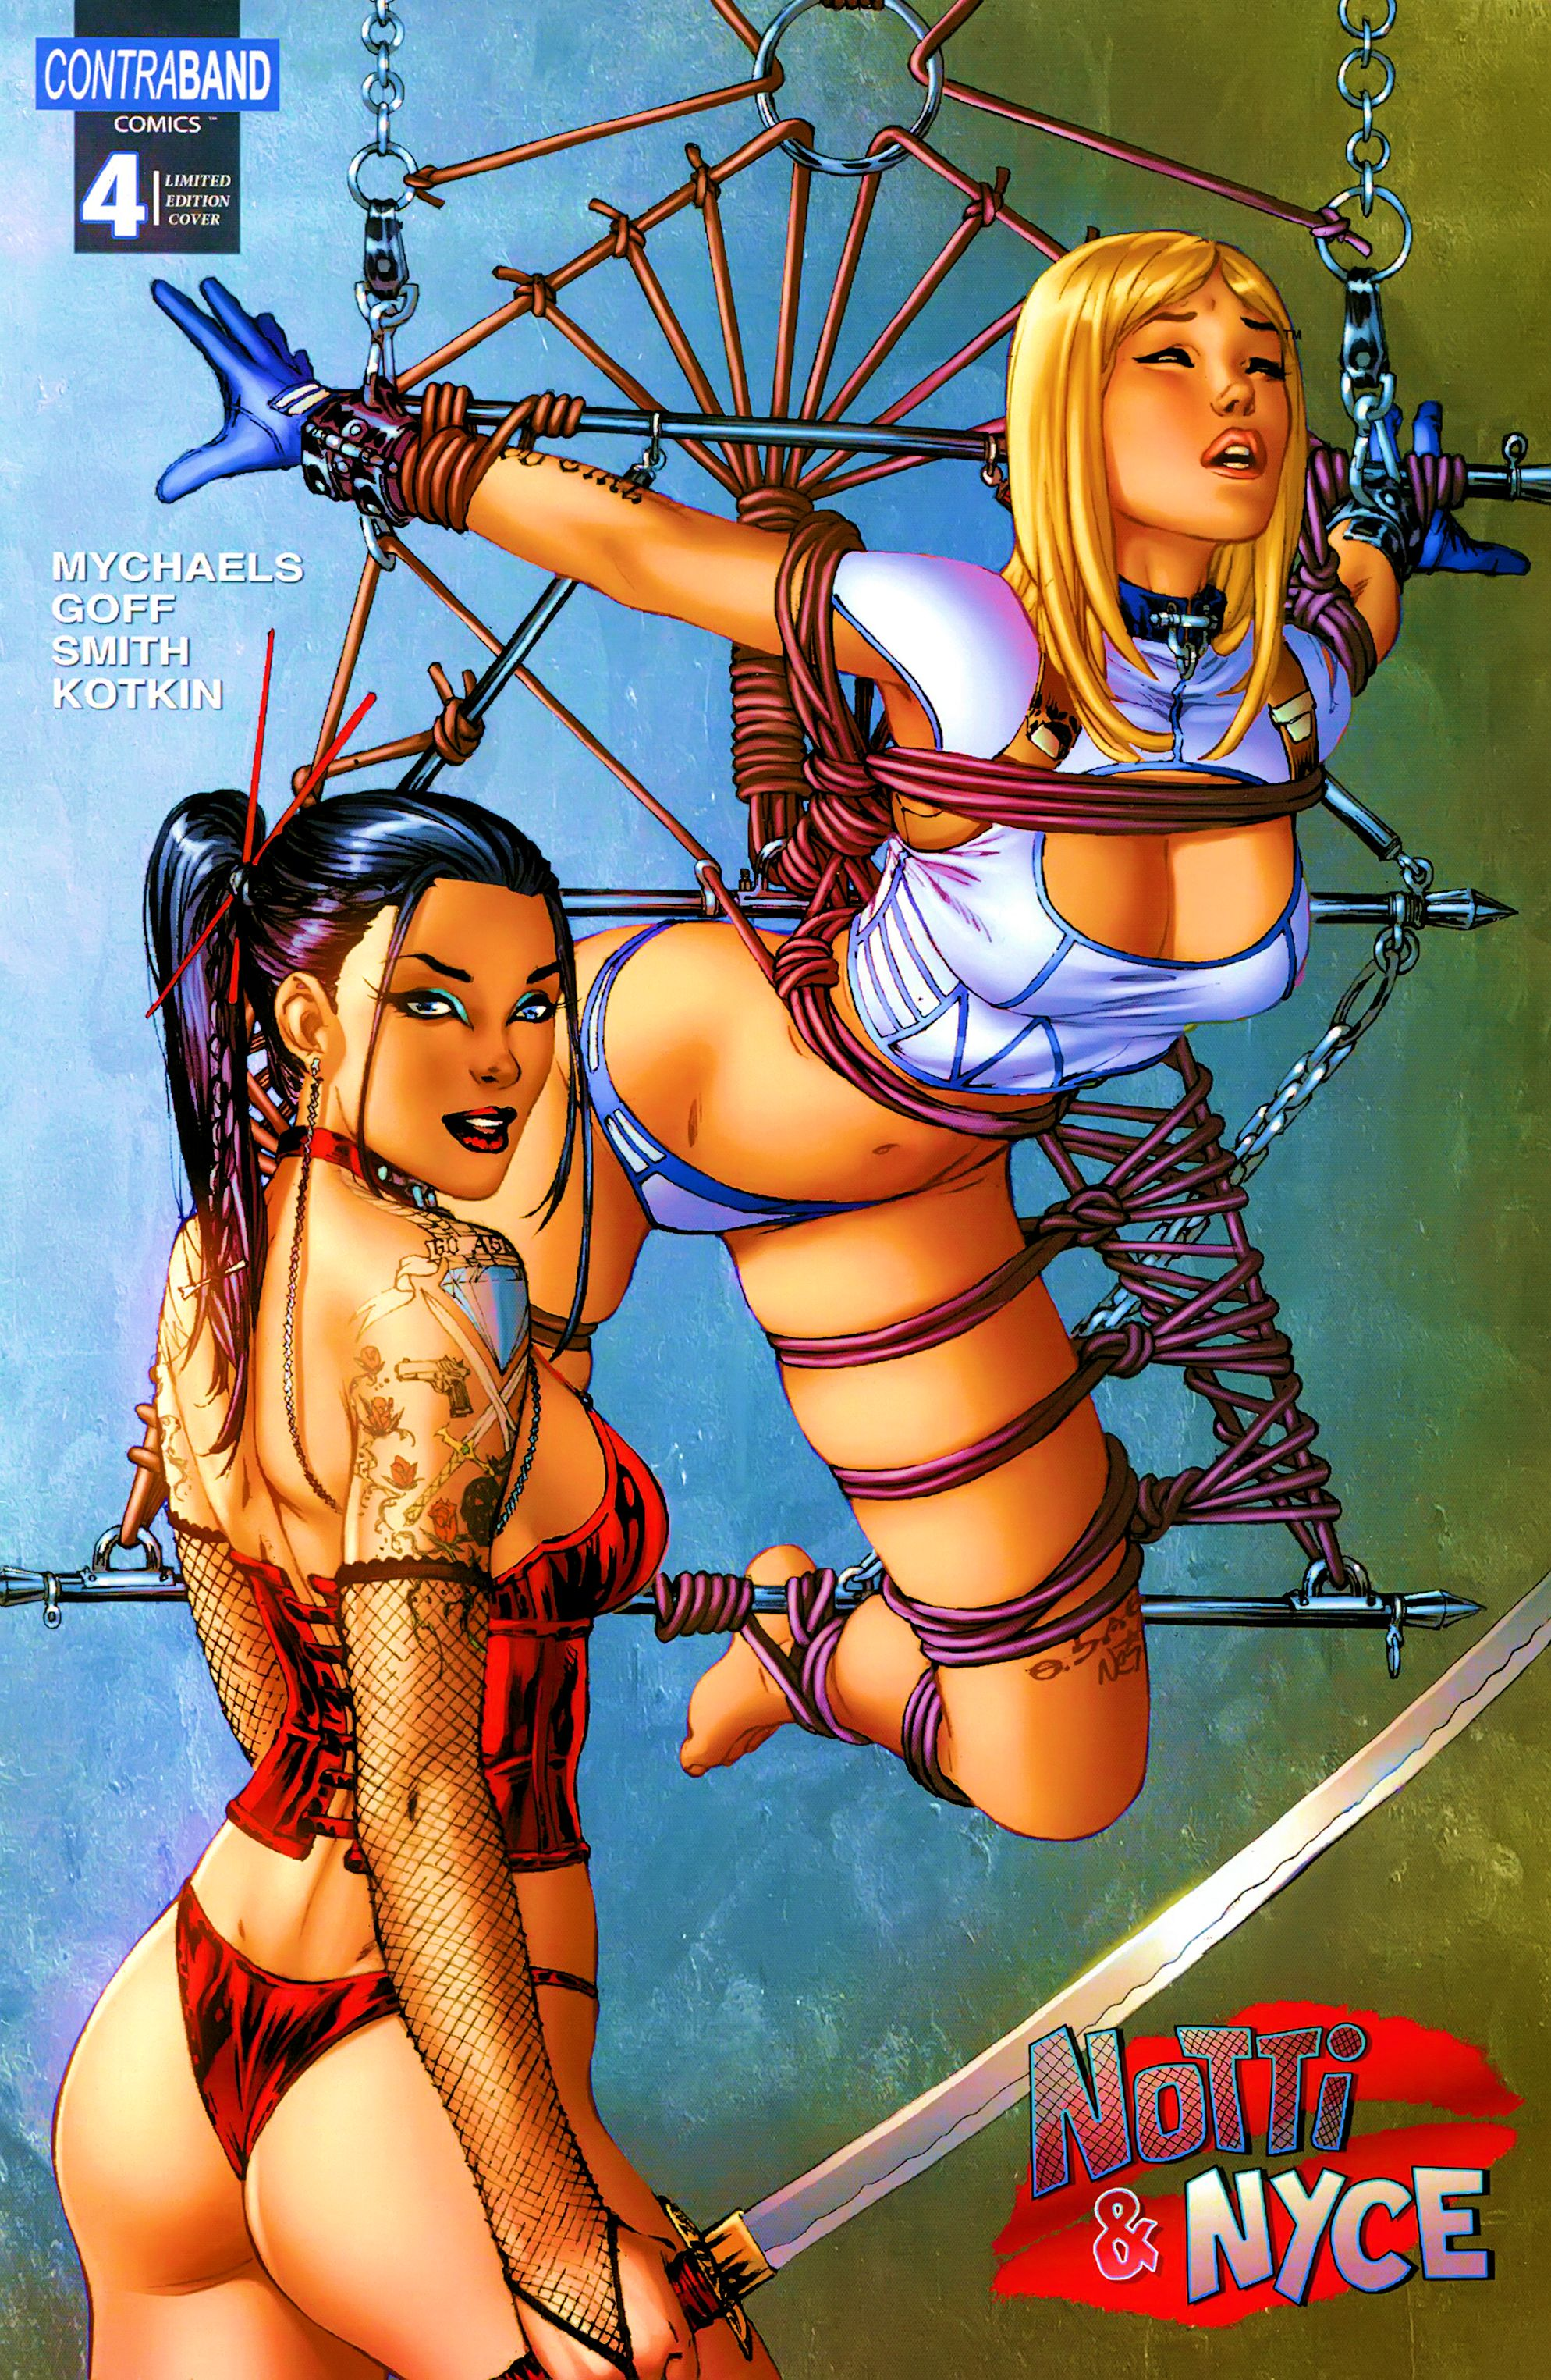 Read online Notti & Nyce comic -  Issue #4 - 1